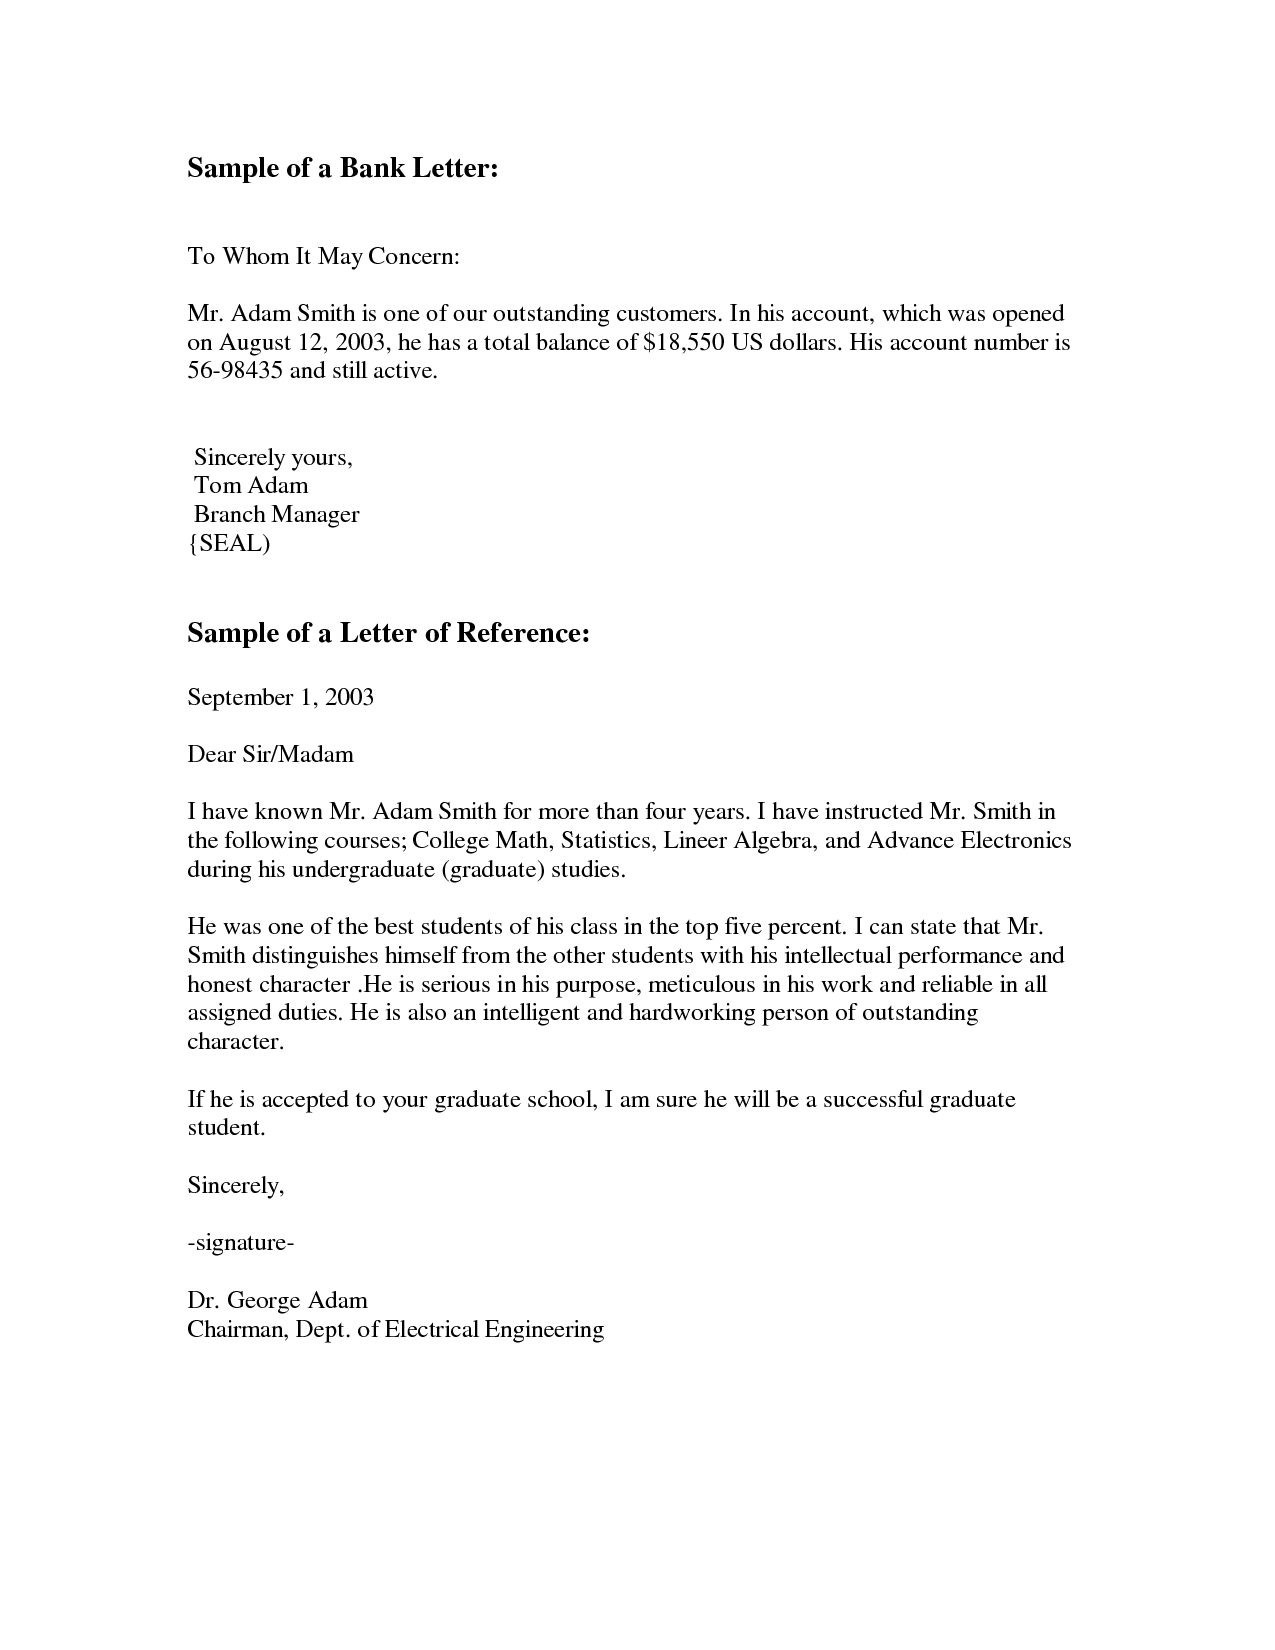 template for a letter of recommendation for a student example-Formal Letter Template Unique bylaws Template 0d Wallpapers 50 ficial Letter Template 17-r